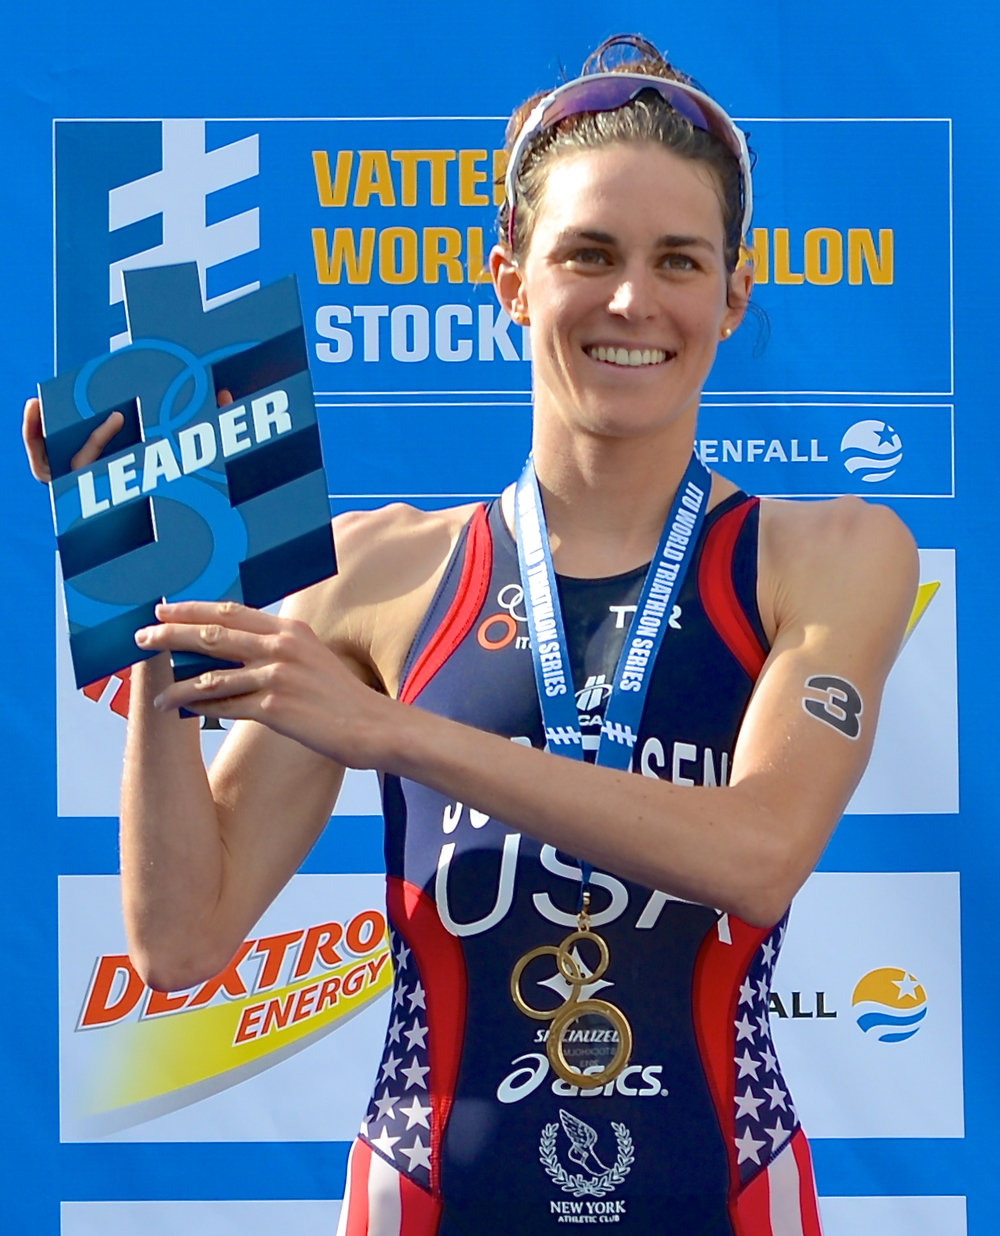 Gwen Jorgensen is a professional triathlete from St Paul, MN. Gwen is a 2012 Olympian and 7x ITU World Triathlon Series race winner. She also likes to read, try new foods, and hang out with friends and family. Feel free to add Gwen on any of the social sites below!